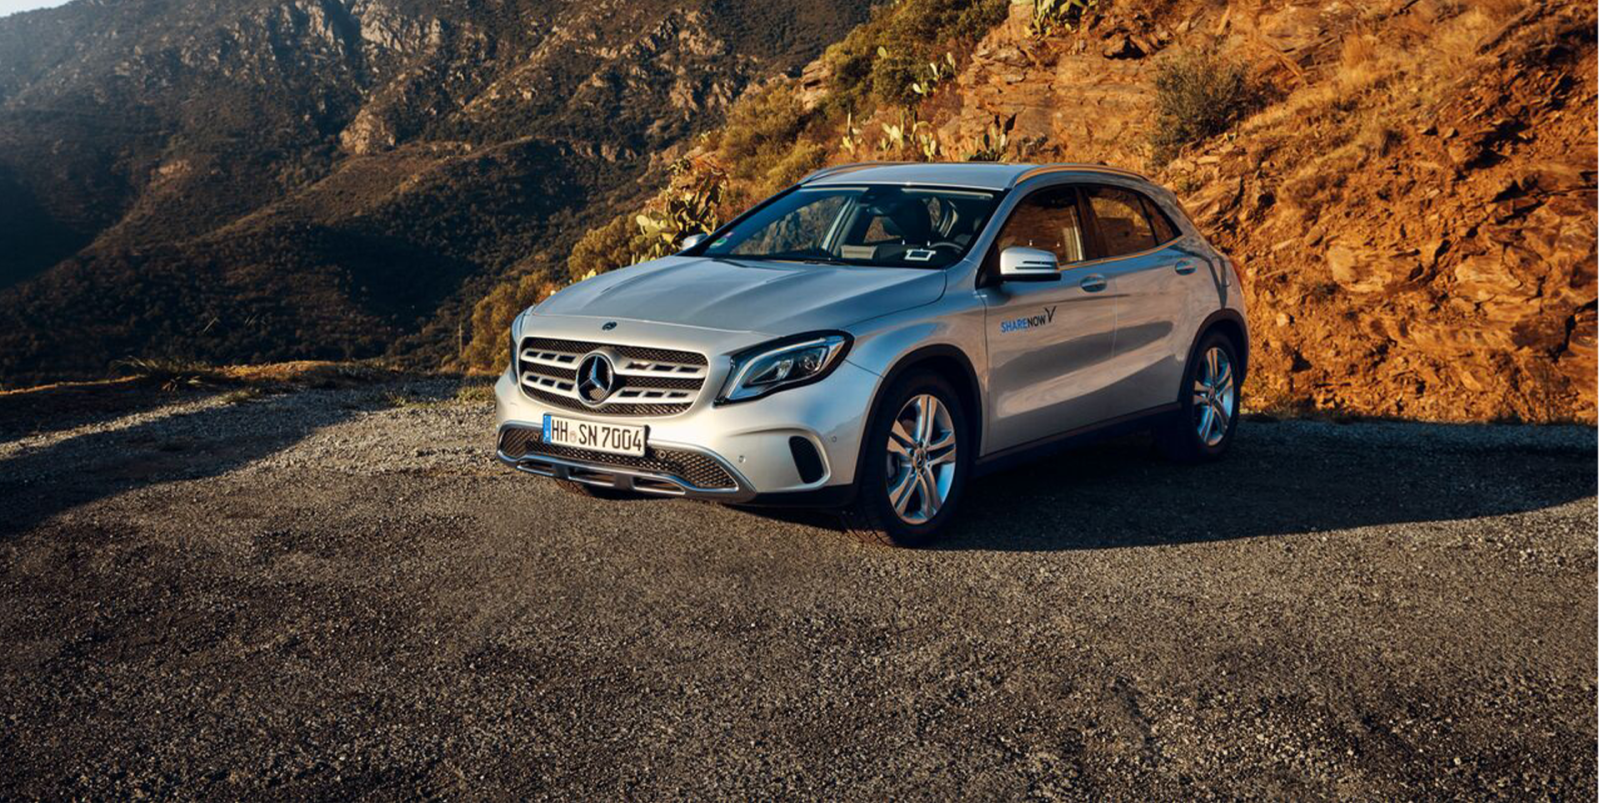 Mercedes-Benz GLA Car standing